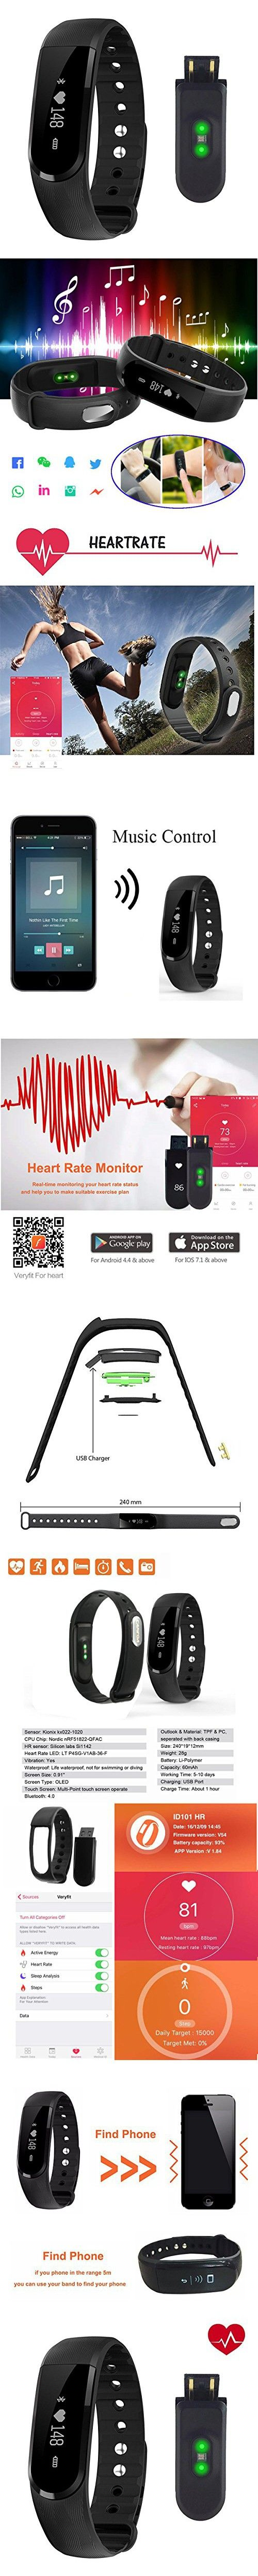 Heart Rate Fitness Tracker,CAMTOA ID101HR Wireless Fitness Monitor,Smart Bracelet,Bluetooth 4.0 Heart Rate monitor-Waterproof IP67,Sleep Monitor,Notification Alerts Wristband for Android IOS Phones